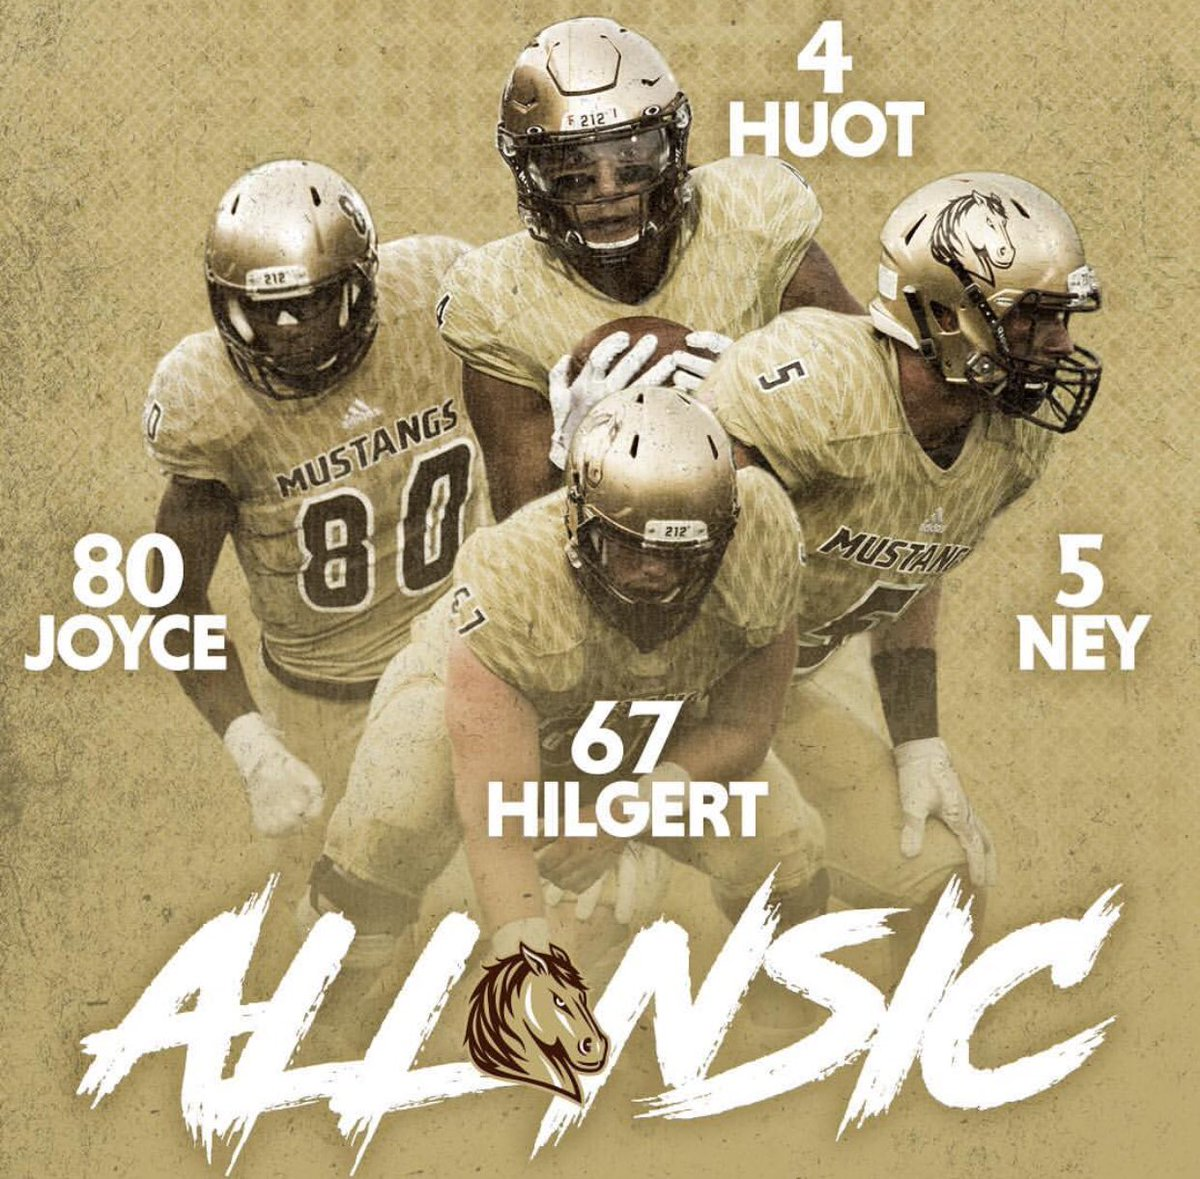 Smsu Football On Twitter The Best Is Yet To Come For These Young